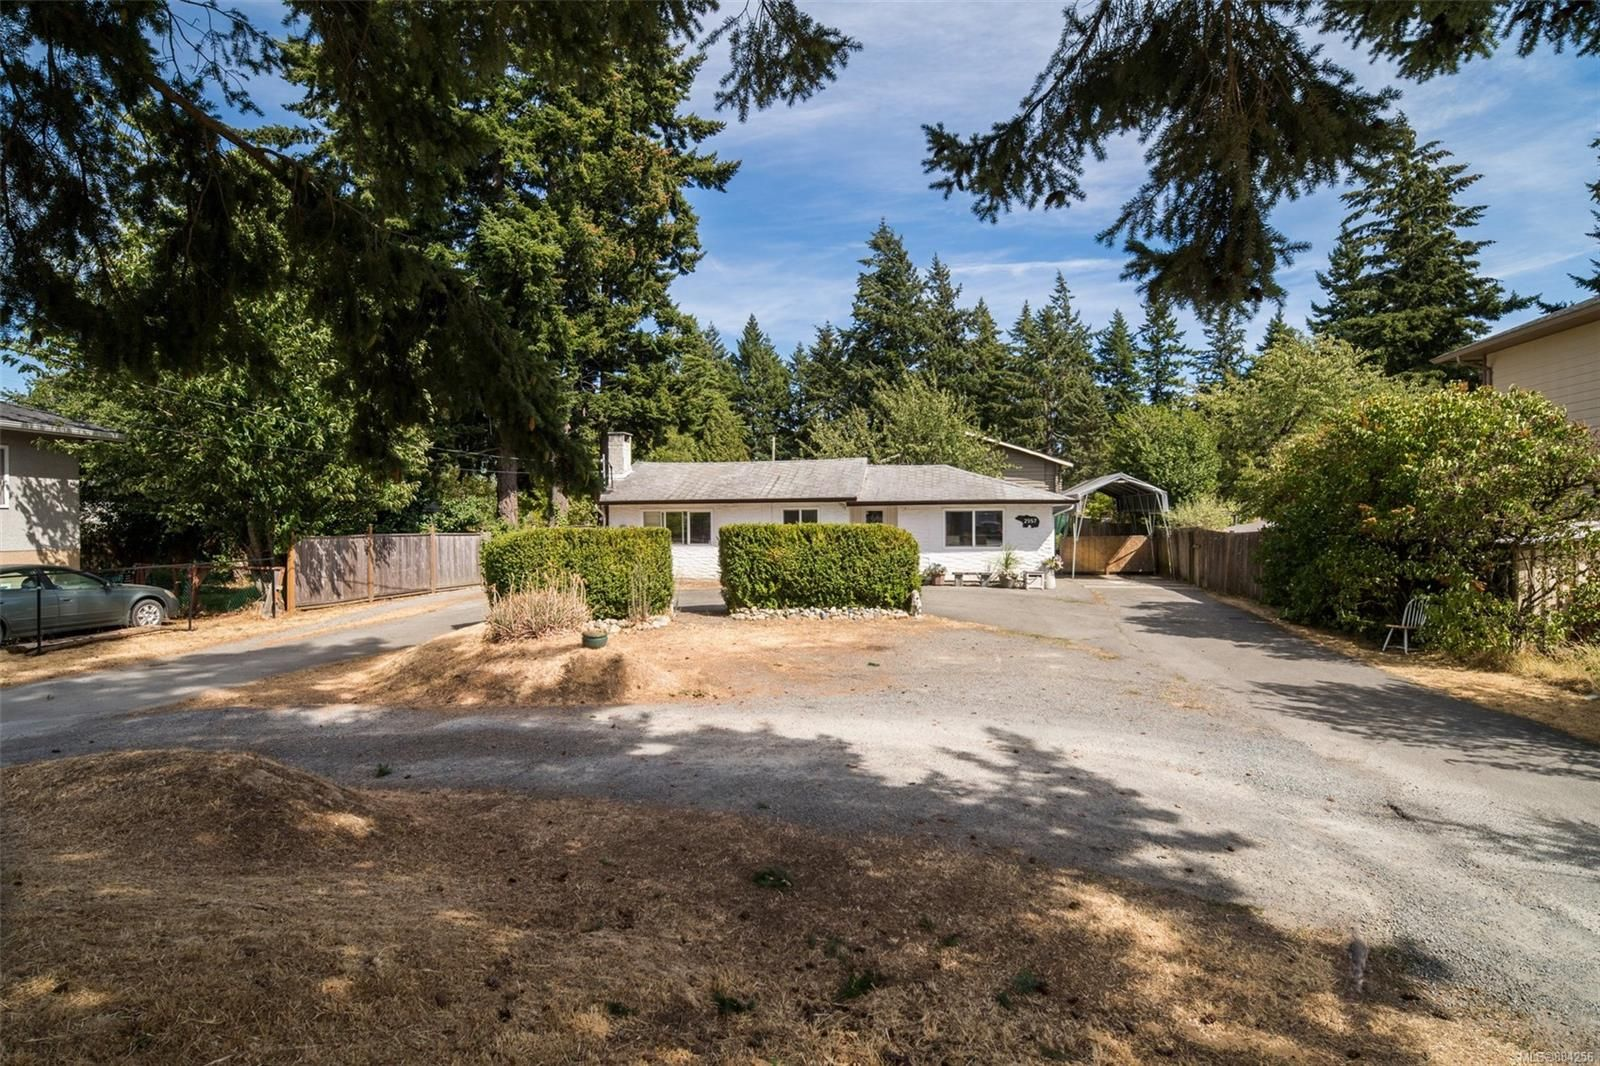 Main Photo: 2957 Pickford Rd in : Co Hatley Park House for sale (Colwood)  : MLS®# 884256